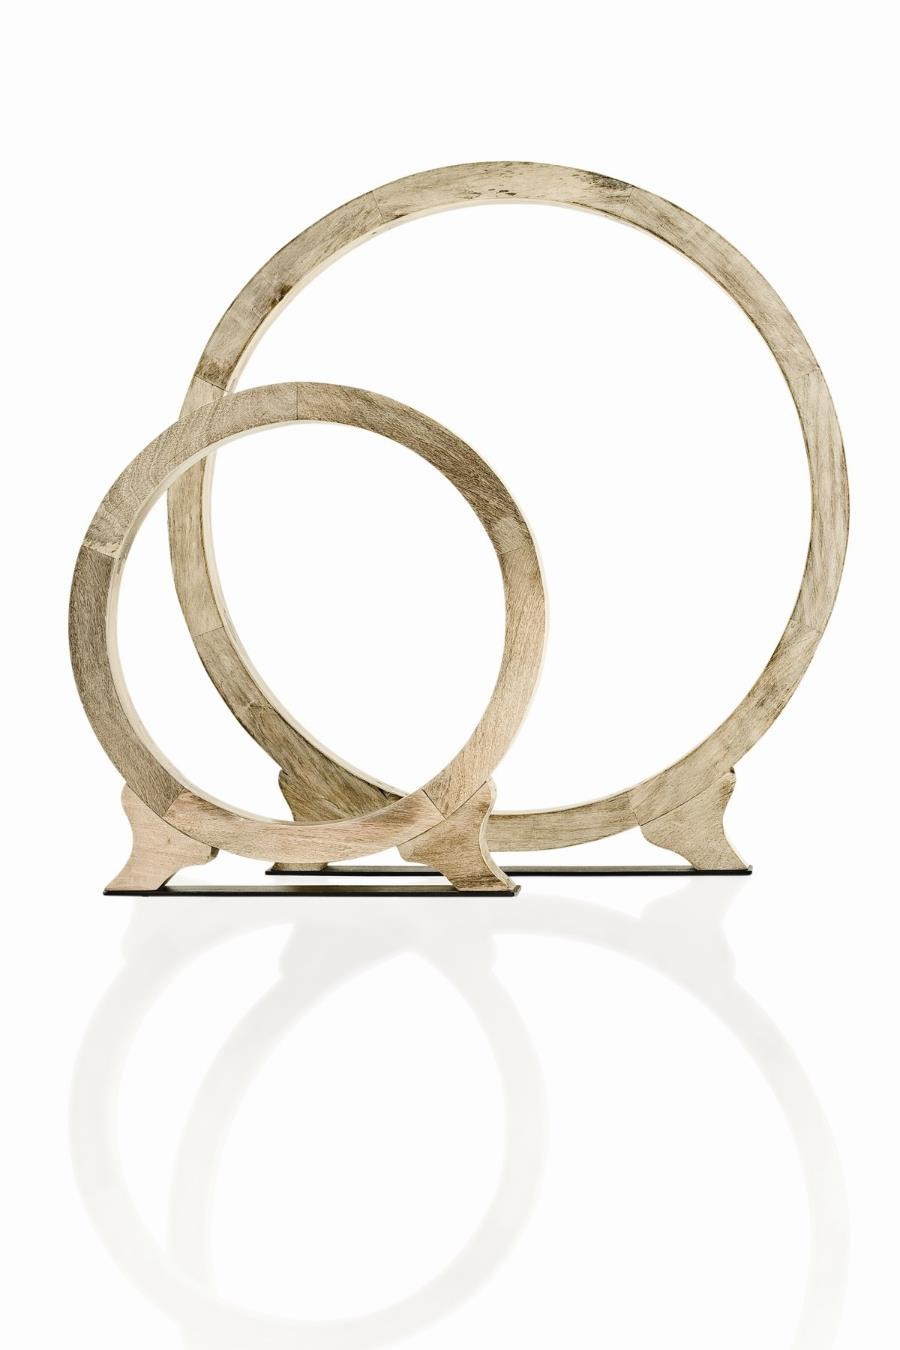 Simple and architectural wooden rings from Arteriors.